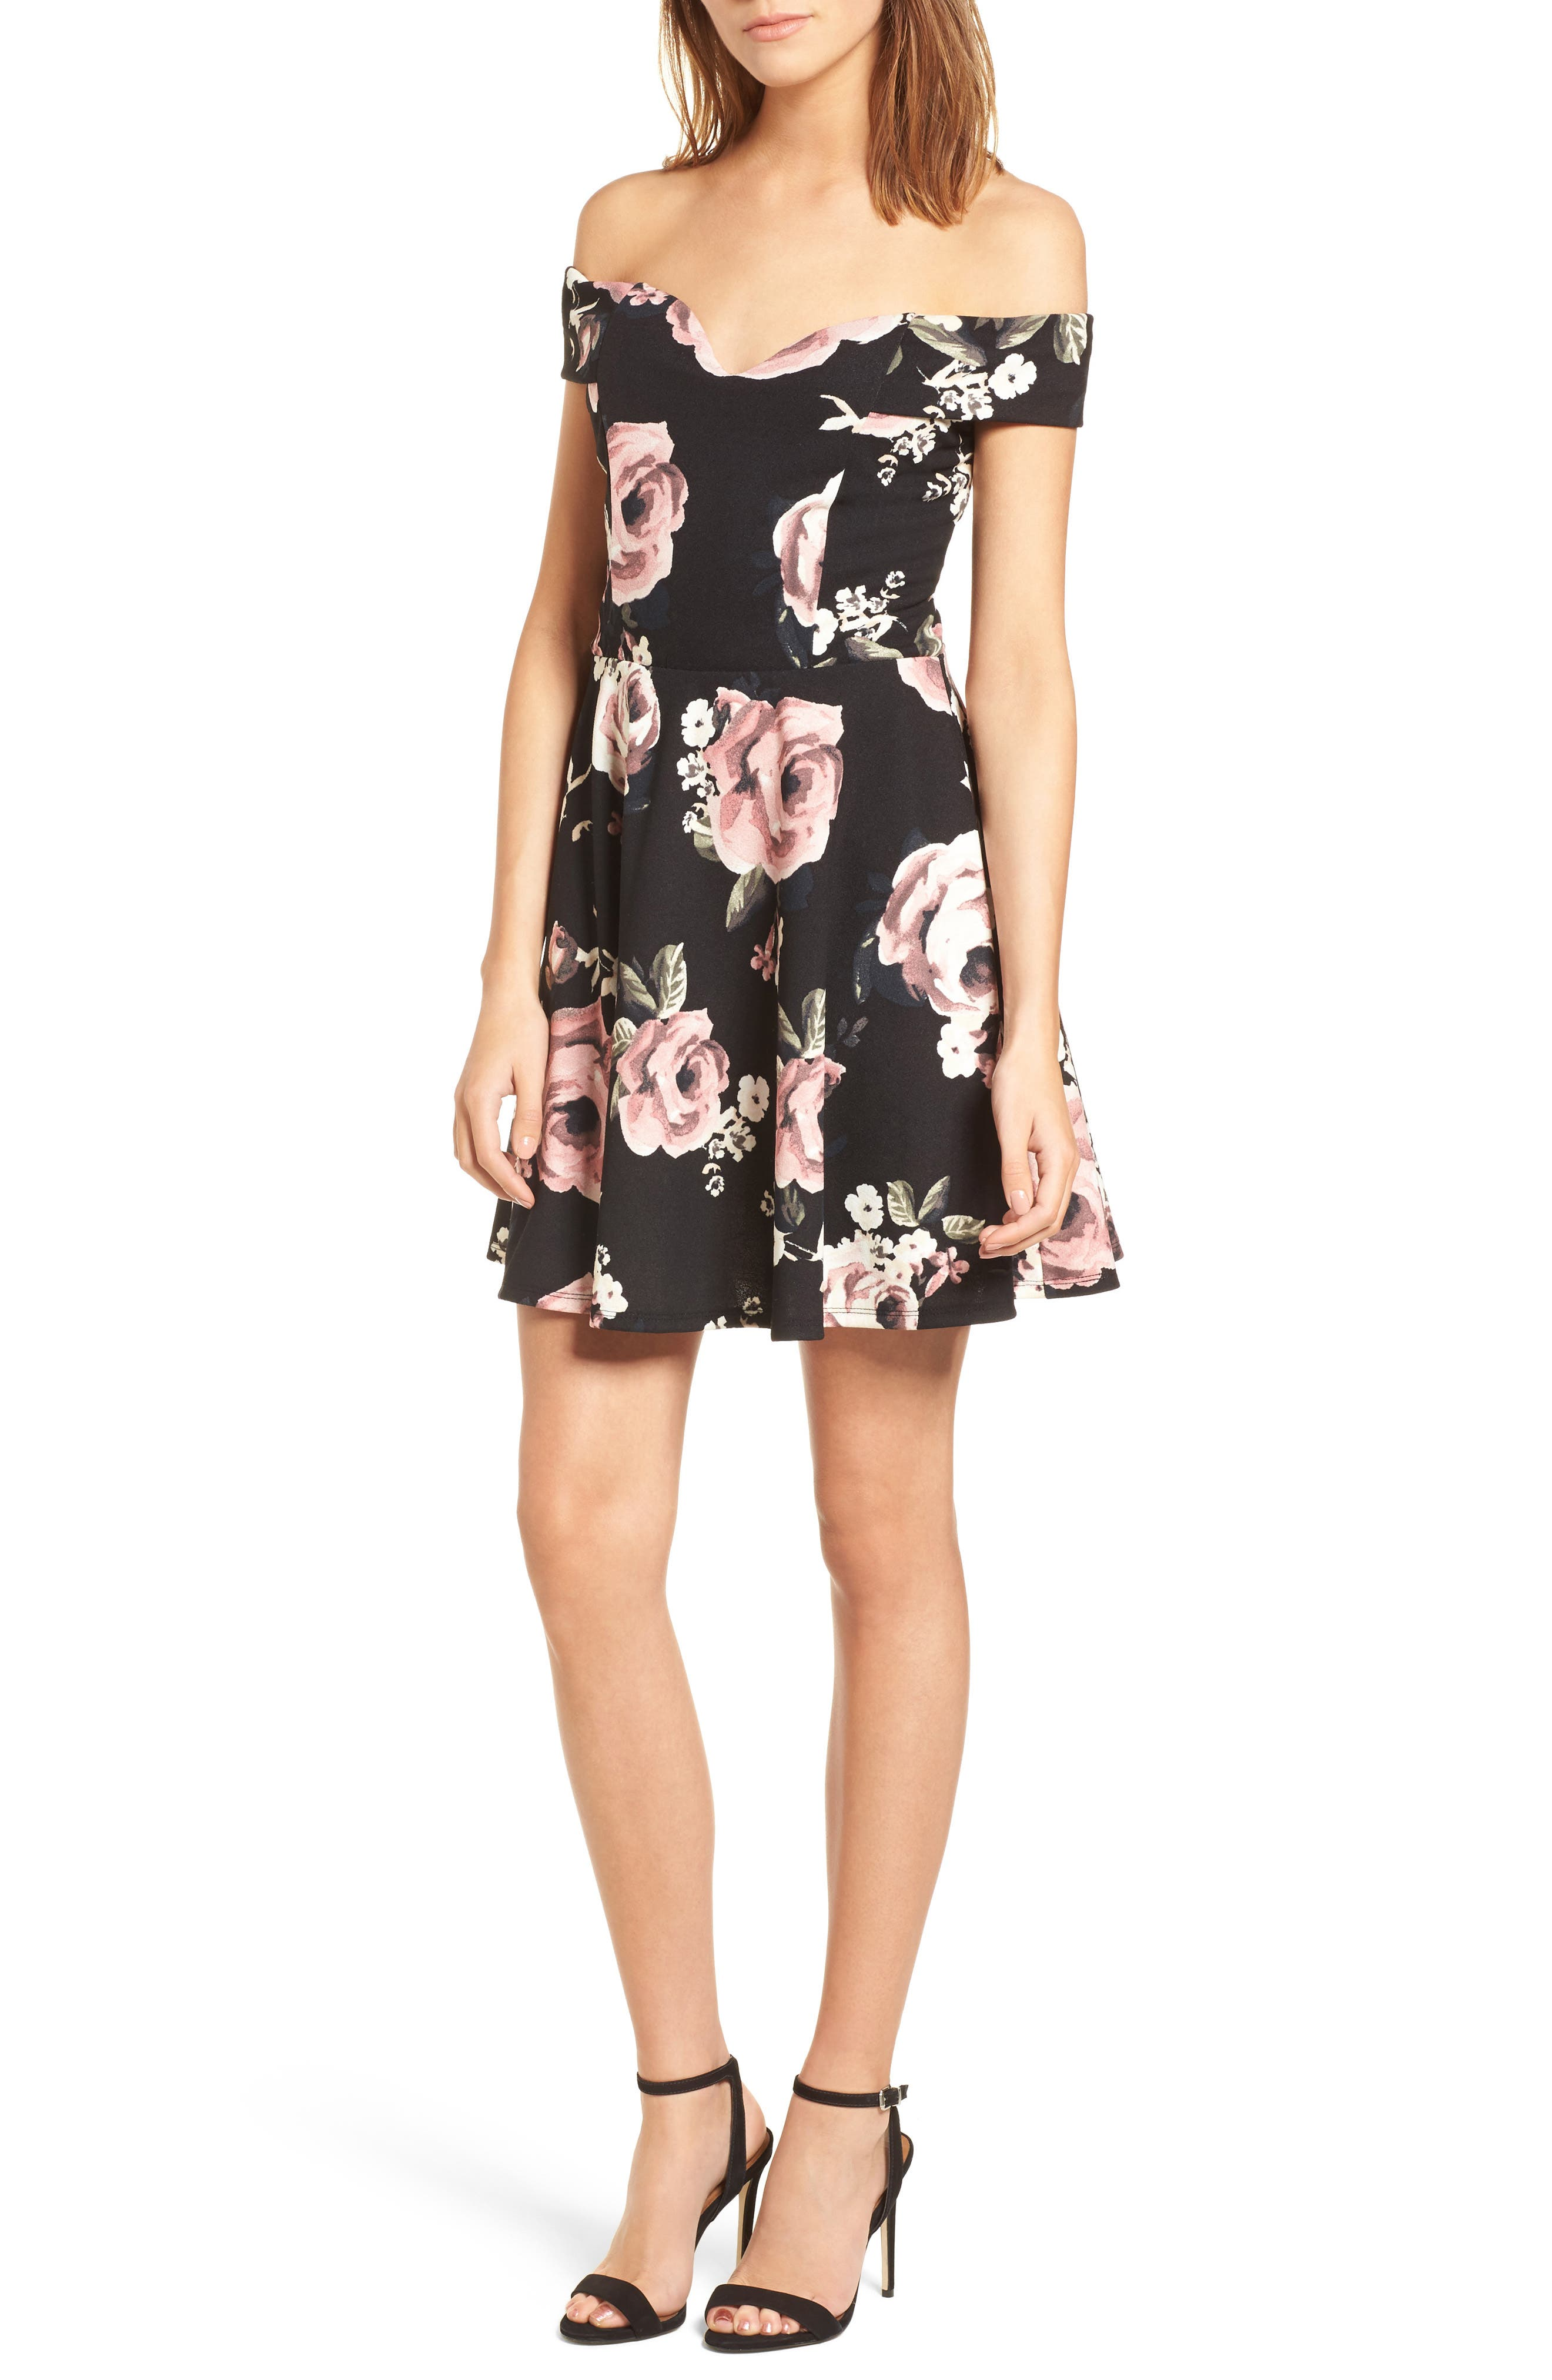 Off the Shoulder Fit & Flare Dress,                             Main thumbnail 1, color,                             Black/ Blush